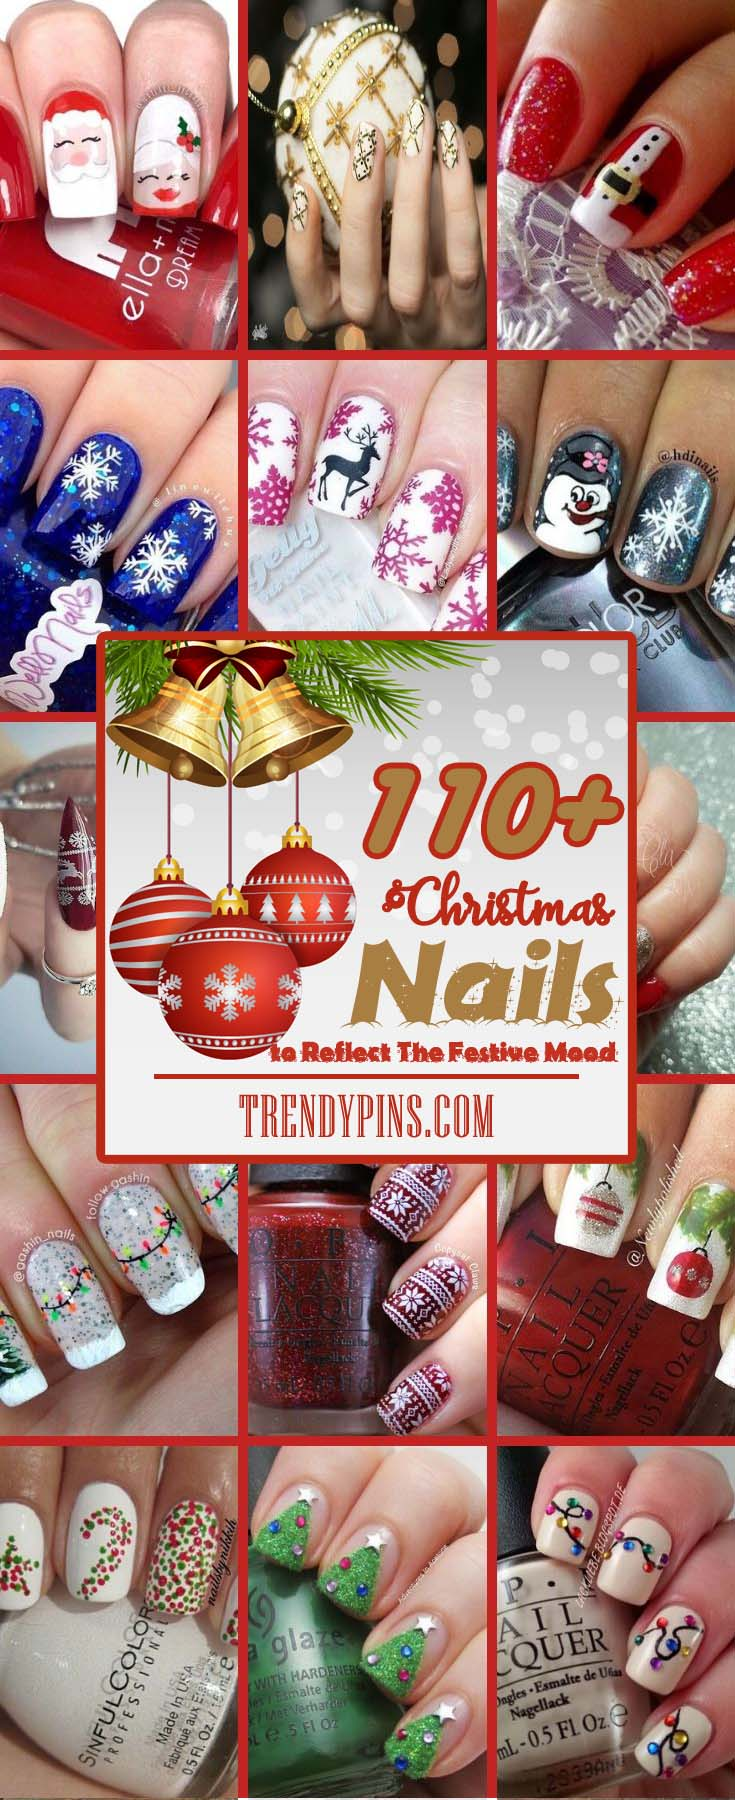 With the feeling of Christmas spirit in the air, you may decide to go for Christmas nails #Christmas #nails #trendypins